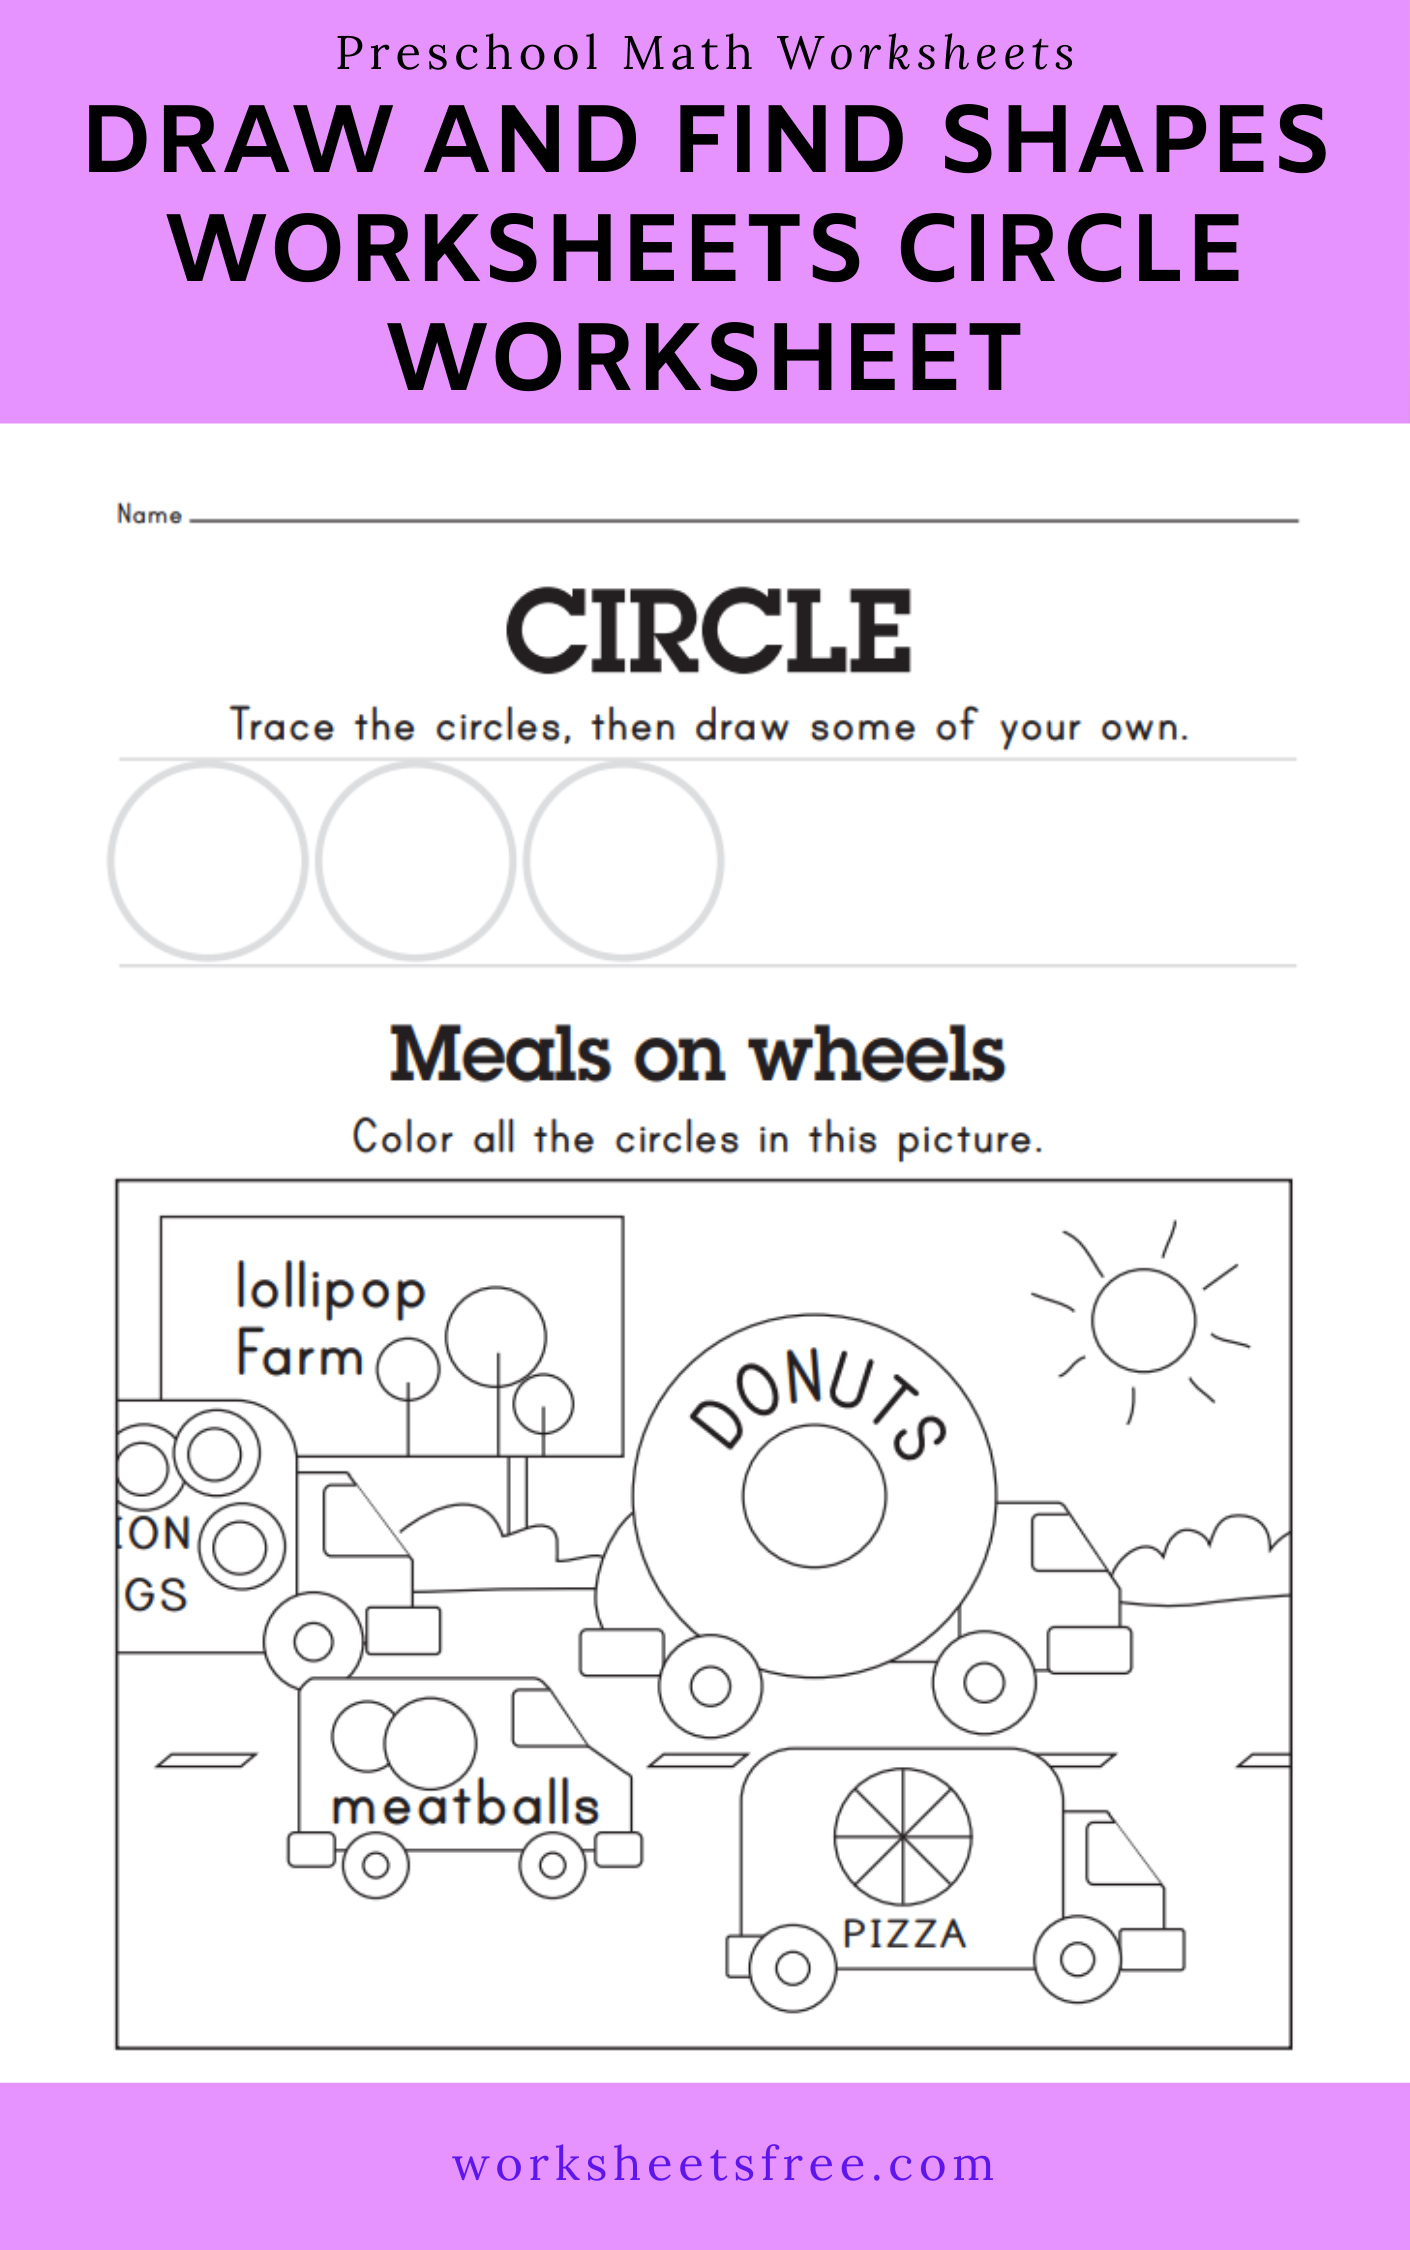 21 Circle Worksheets For Preschoolers Coloring Style